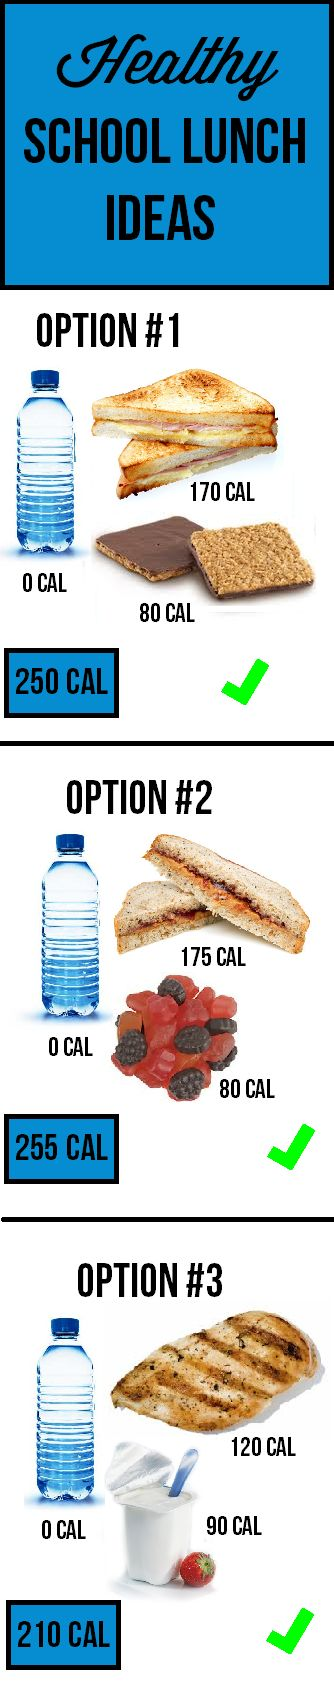 Healthy School Lunch Ideas - All under 300 calories! Azure Standard natural and organic ingredients would be amazing in this recipe! Contact us at today 785-380-0034 if you are interested in having high quality affordable organics delivered to your area.